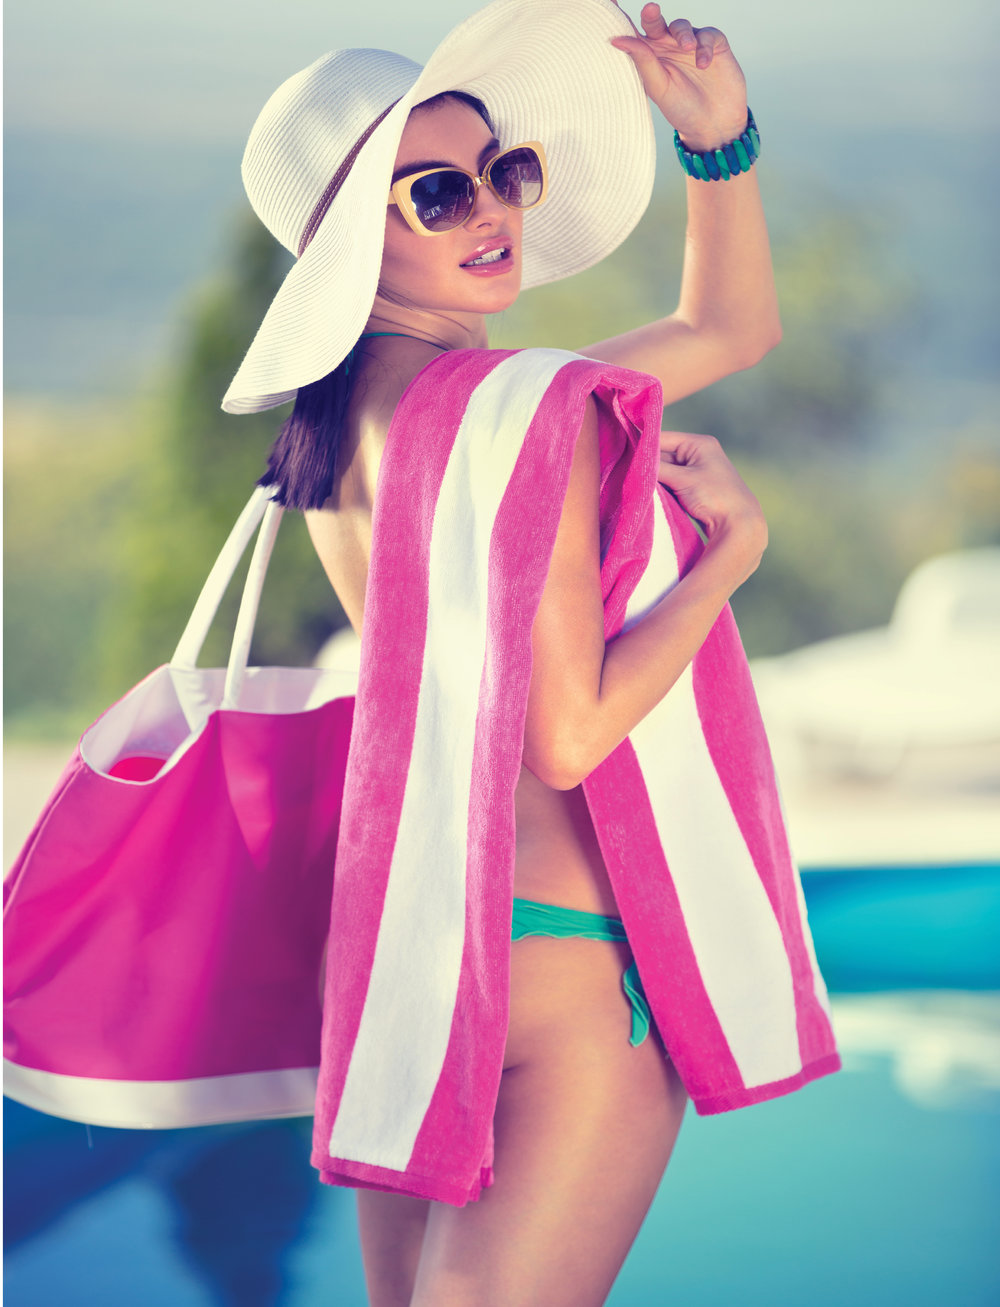 BEACH  Hit the beach in style with one of Nortex's fashionable beach towels, that are large yet lightweight. Enjoy the sun and stay sand free with a Nortex Beach Towel.